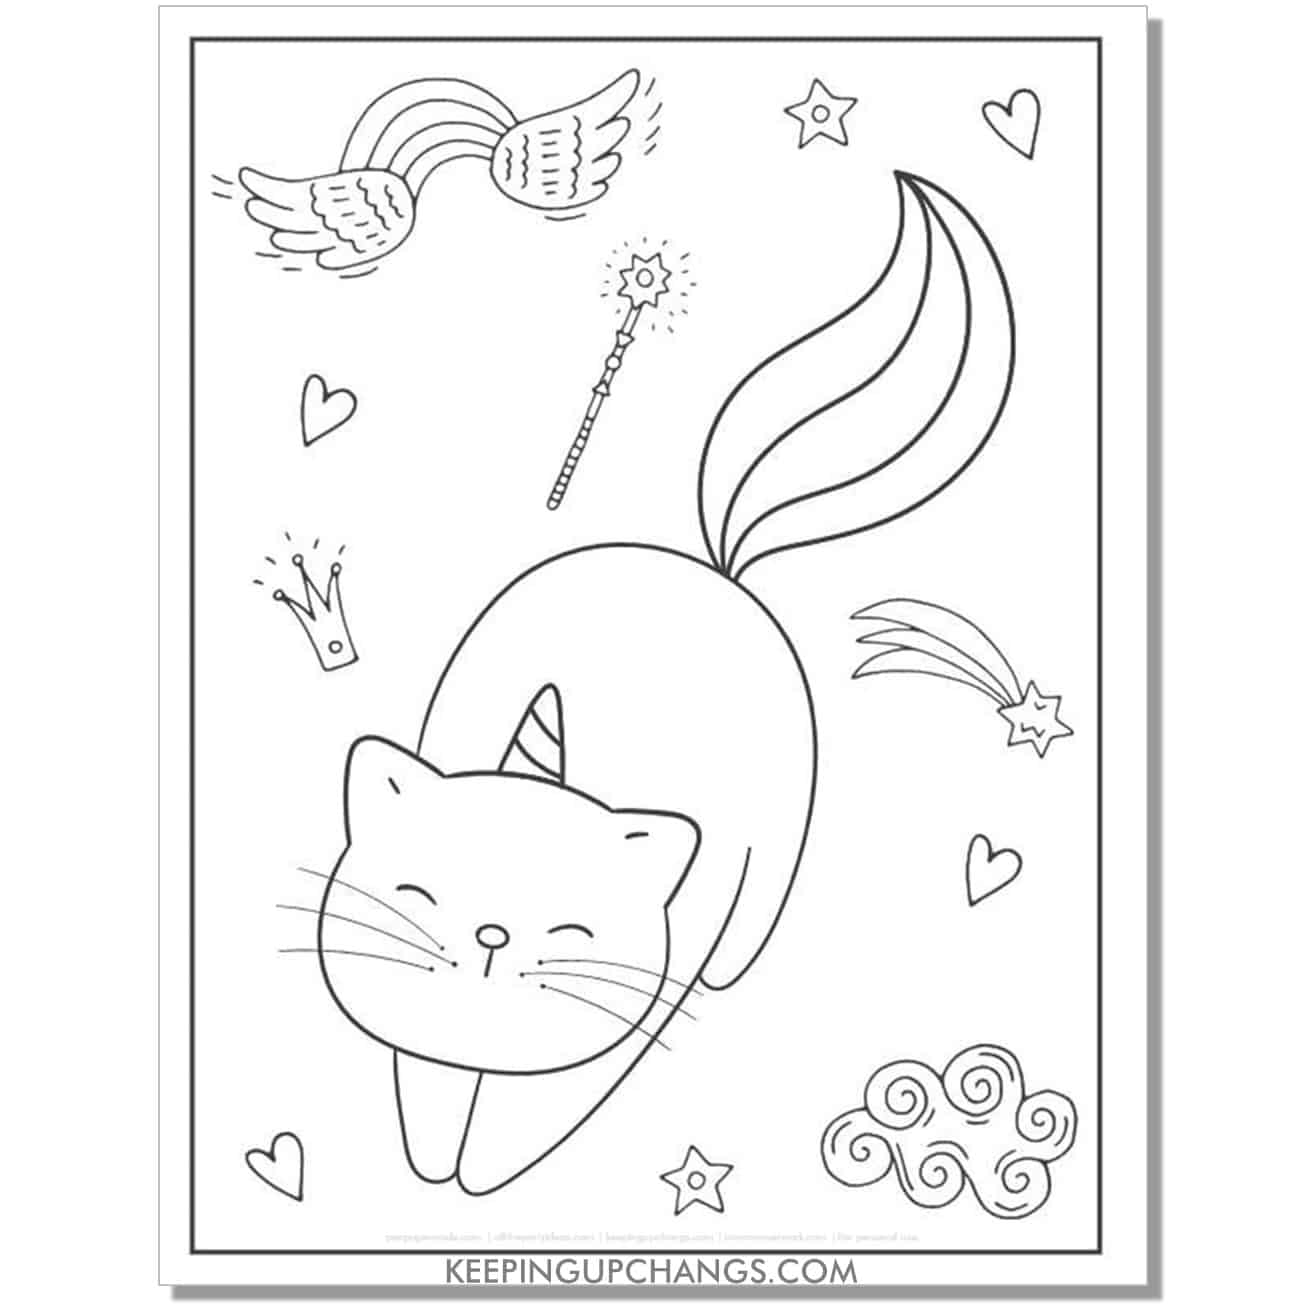 cat unicorn with wand, fairy, princess crown coloring page.